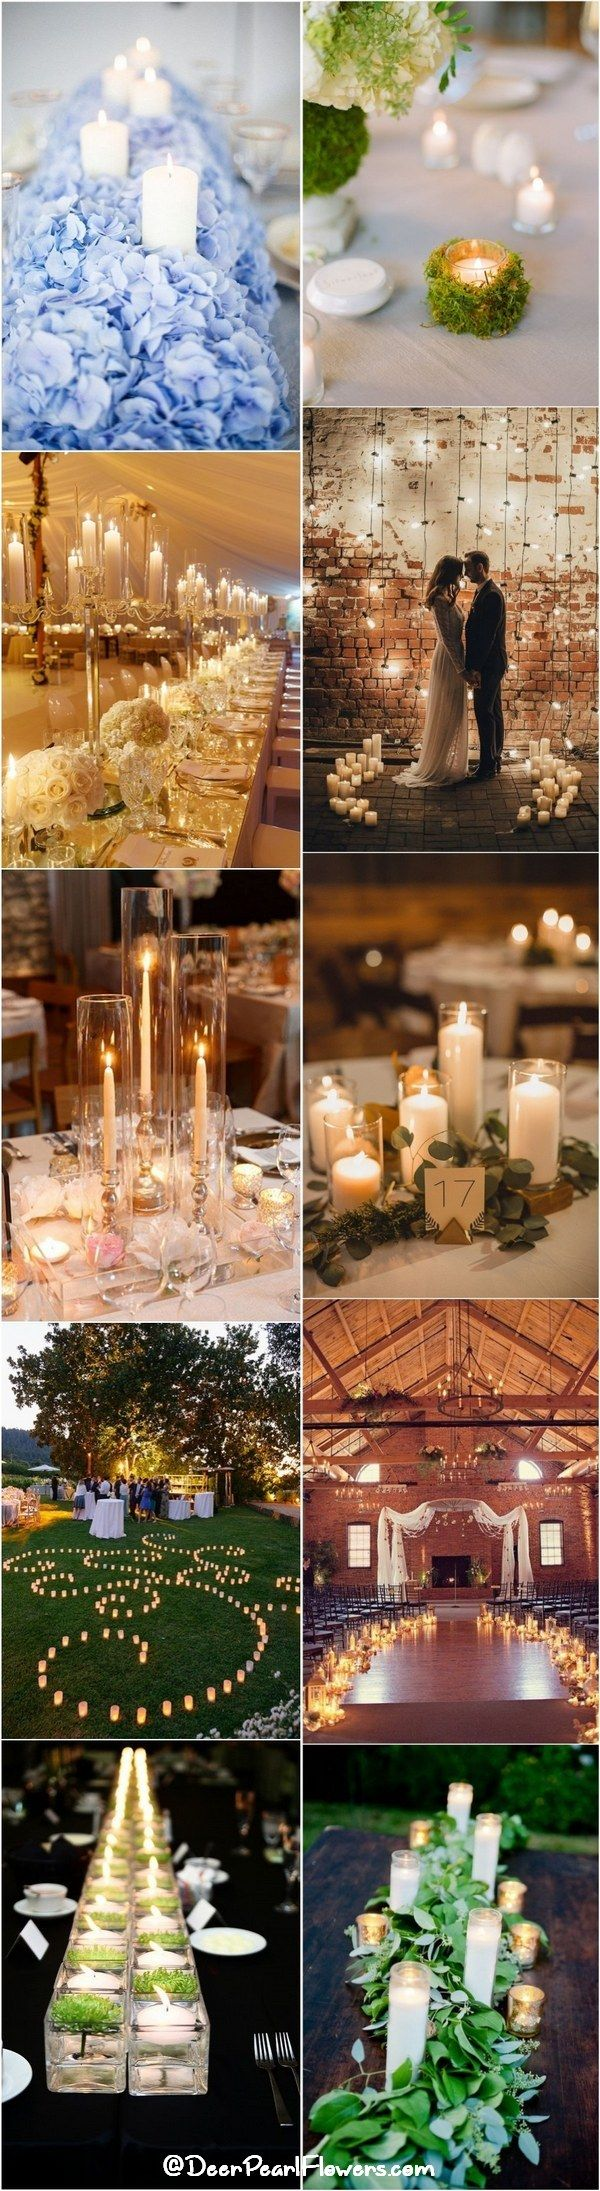 Romantic Candle Wedding Reception Decor Ideas / http://www.deerpearlflowers.com/wedding-ideas-using-candles/